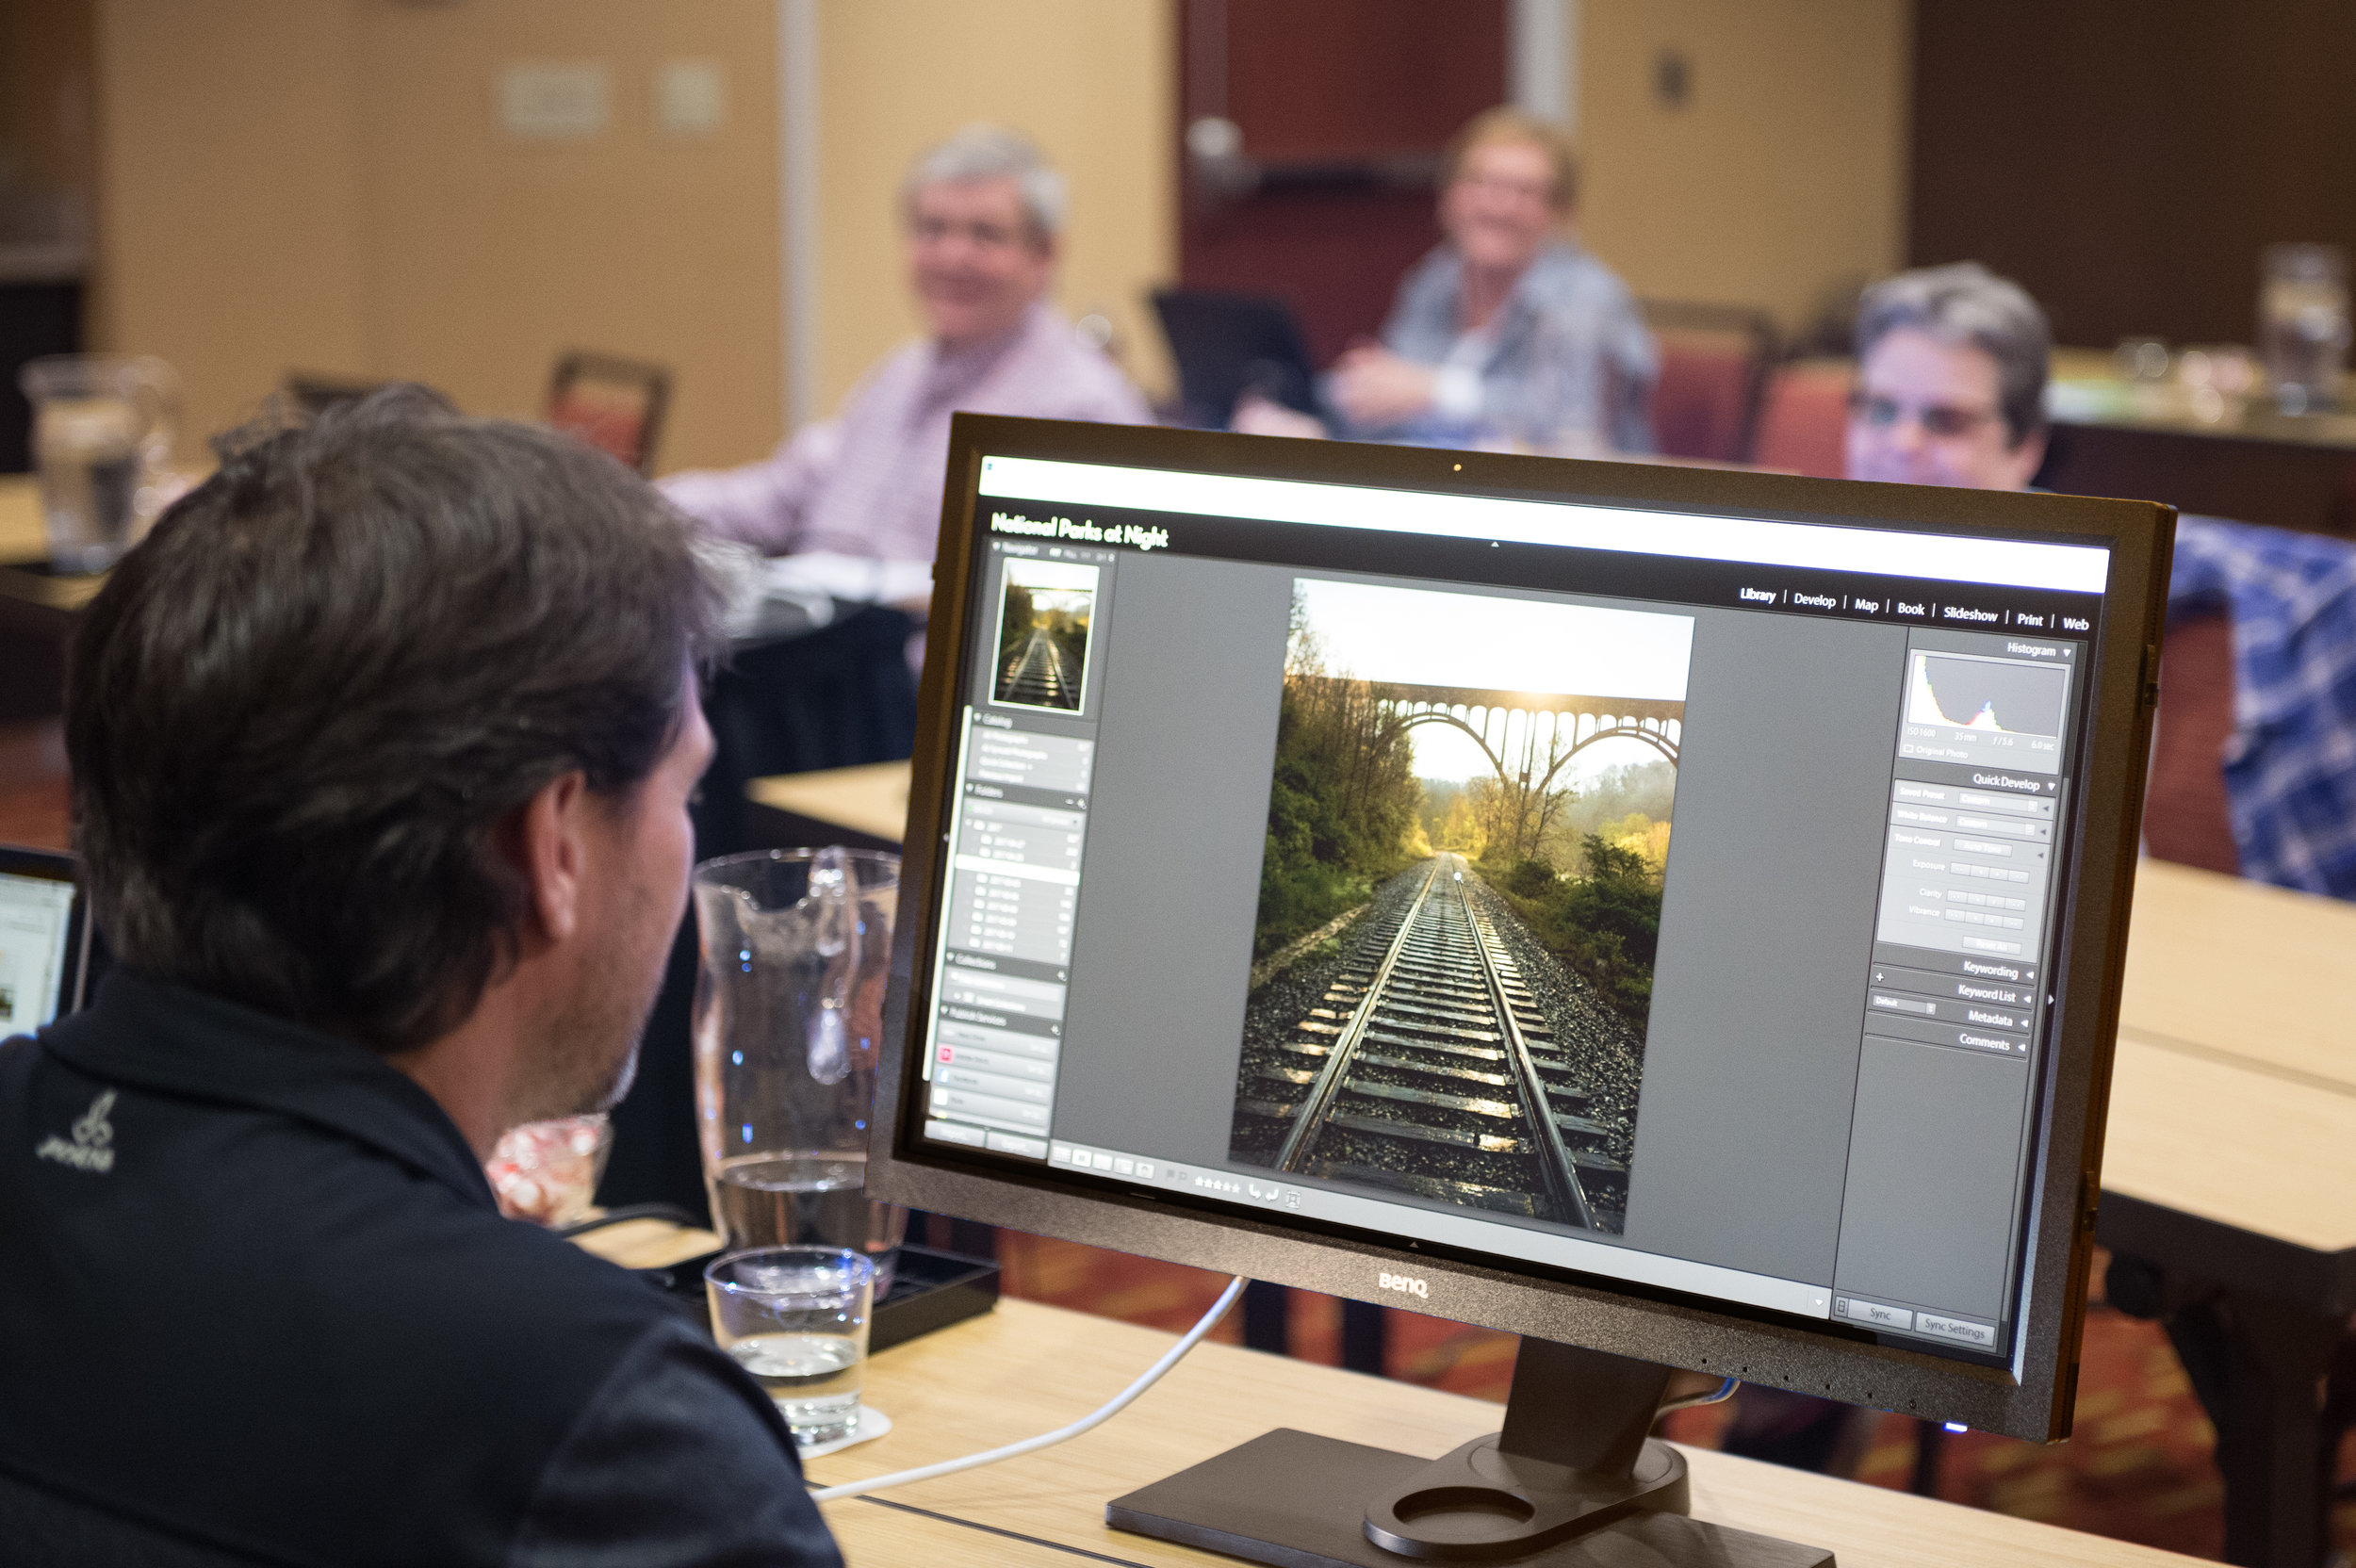 BenQ sent a  SW2700PT 27-inch display  to some workshops this year, including Cuyahoga Valley National Park in Ohio (above), for attendees to use for image editing and review.